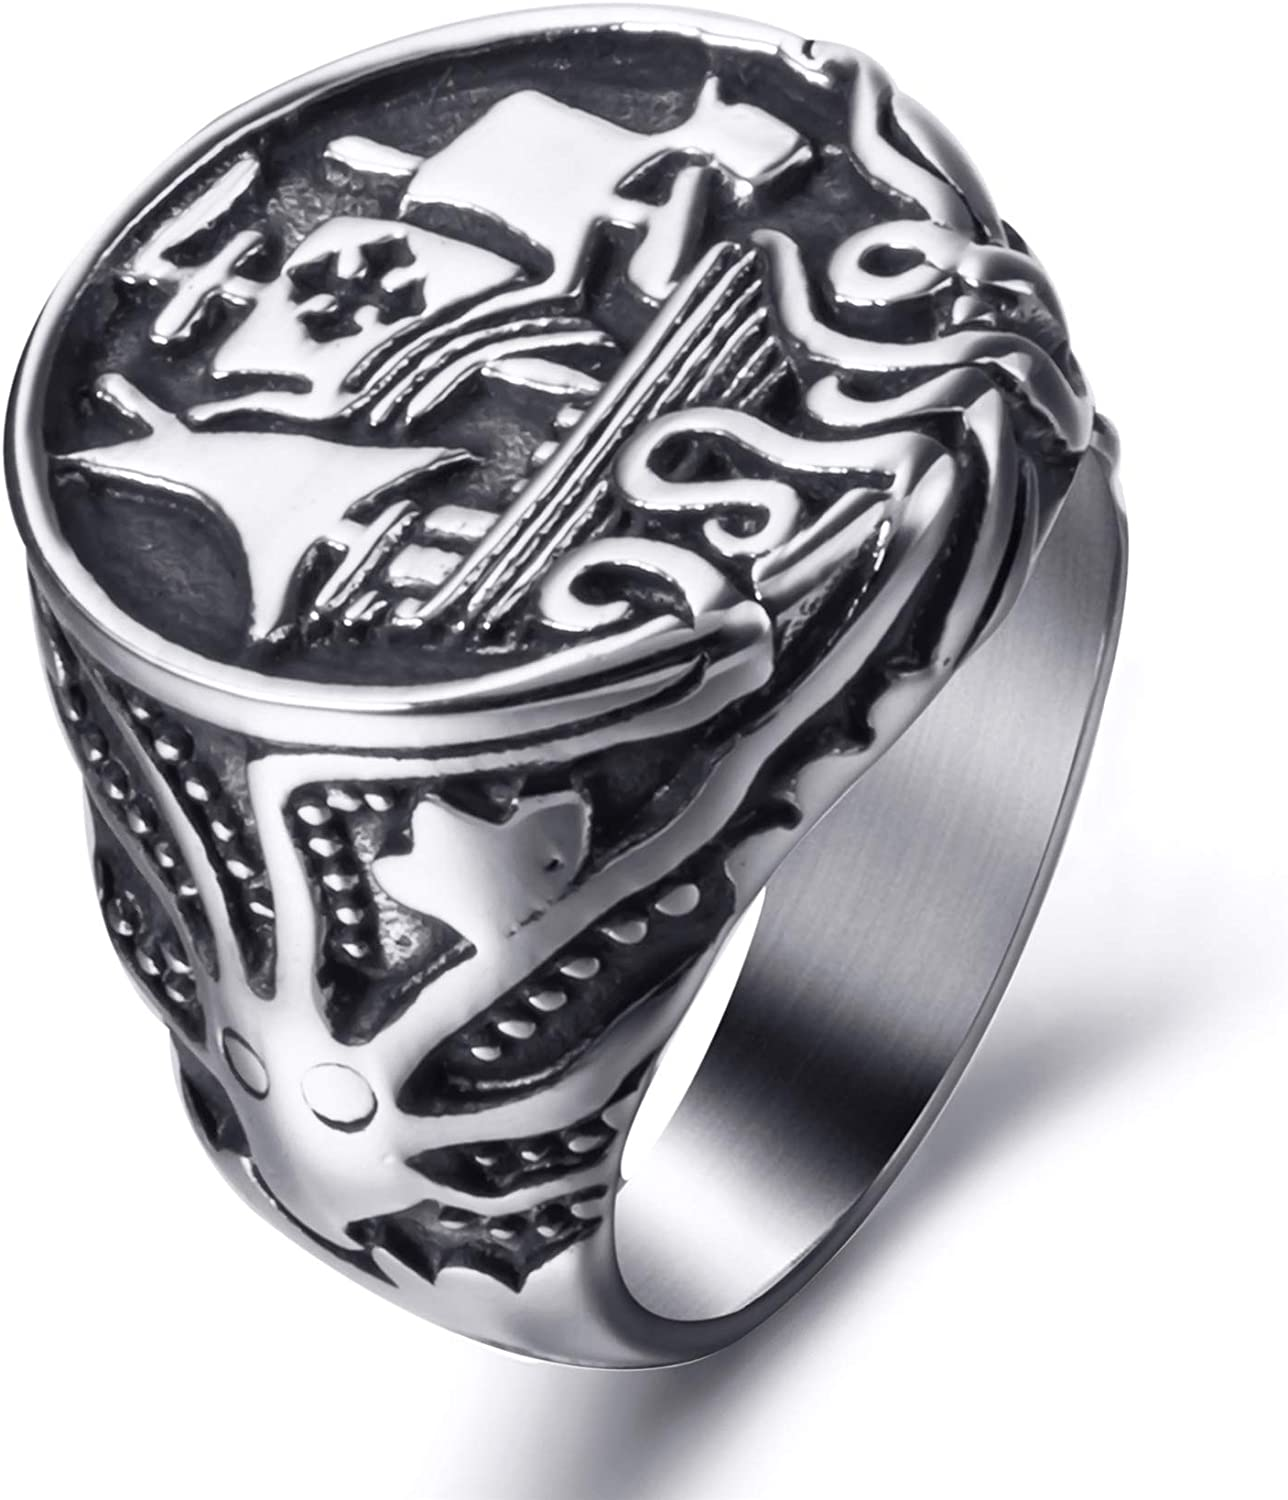 Elfasio Viking Drakkar Ship Kraken Norse Sea Monster Octopus Squid Tentacle Stainless Steel Vintage Ring